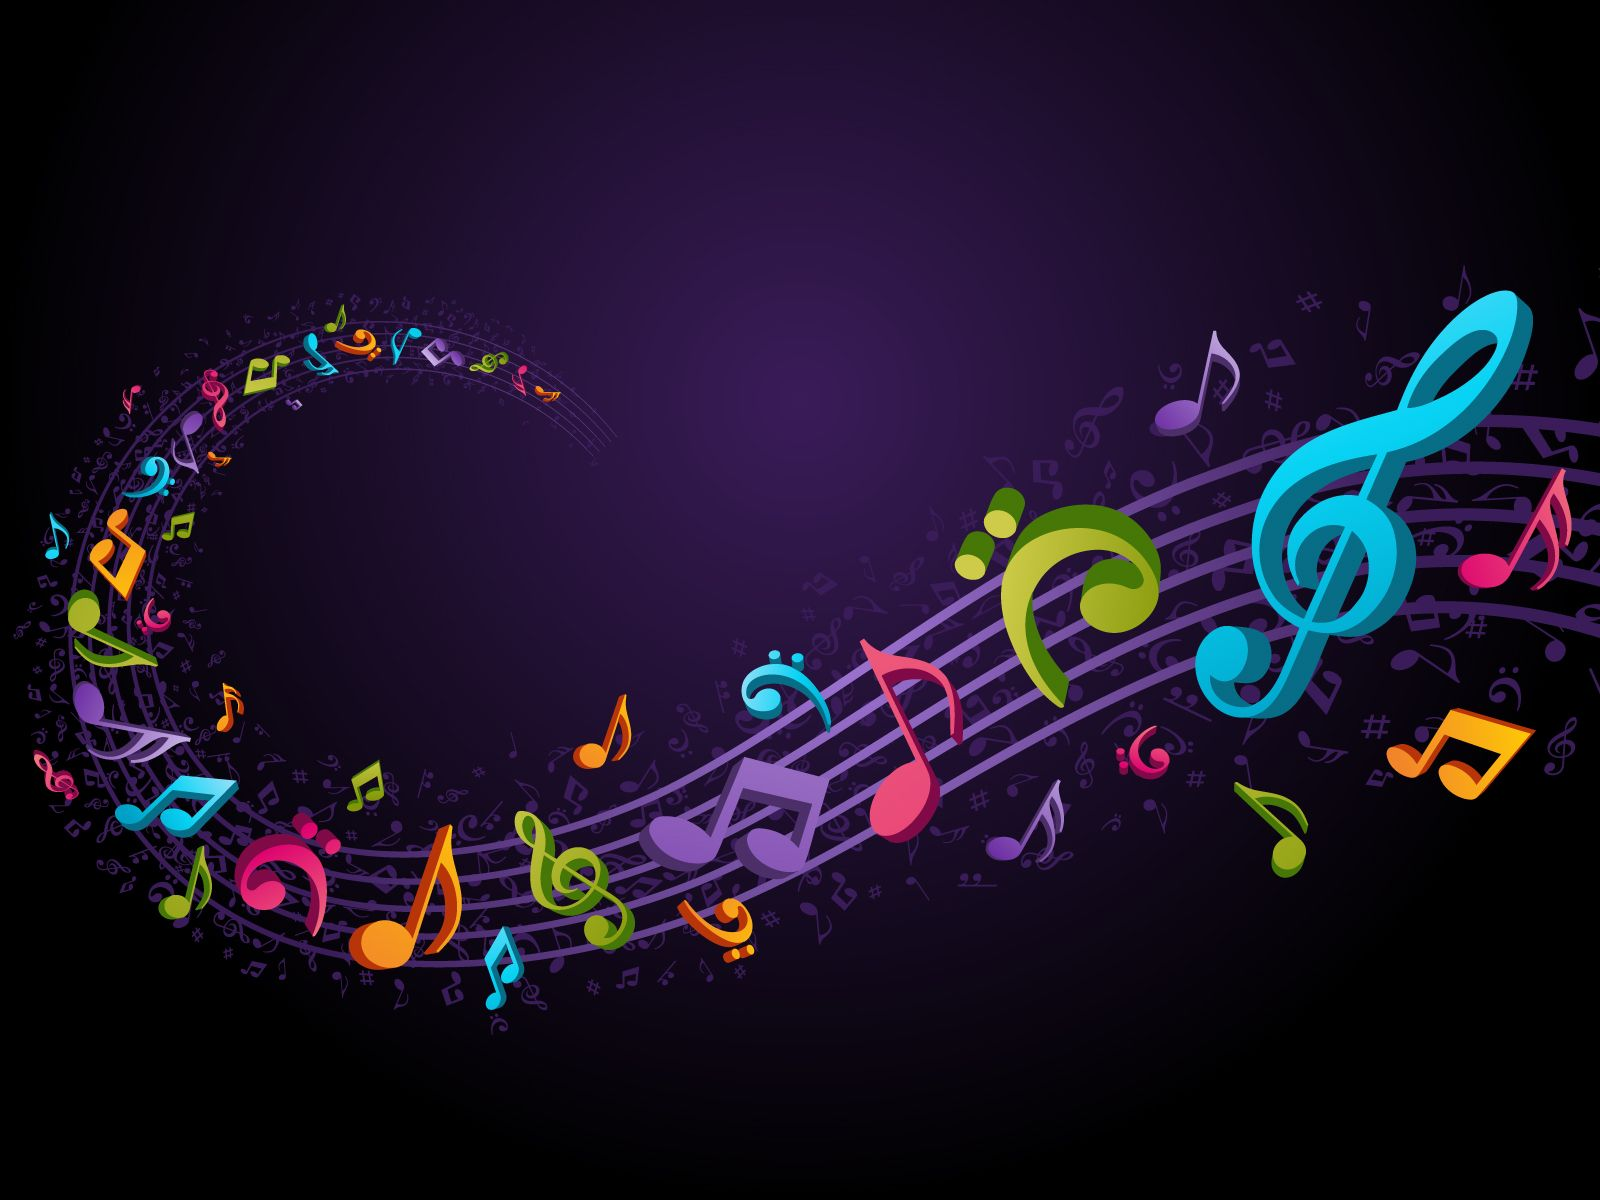 Cool Wallpaper Music Purple - 5bc3069131107ba50aa238f53ee7d96e  Pictures_519387.jpg